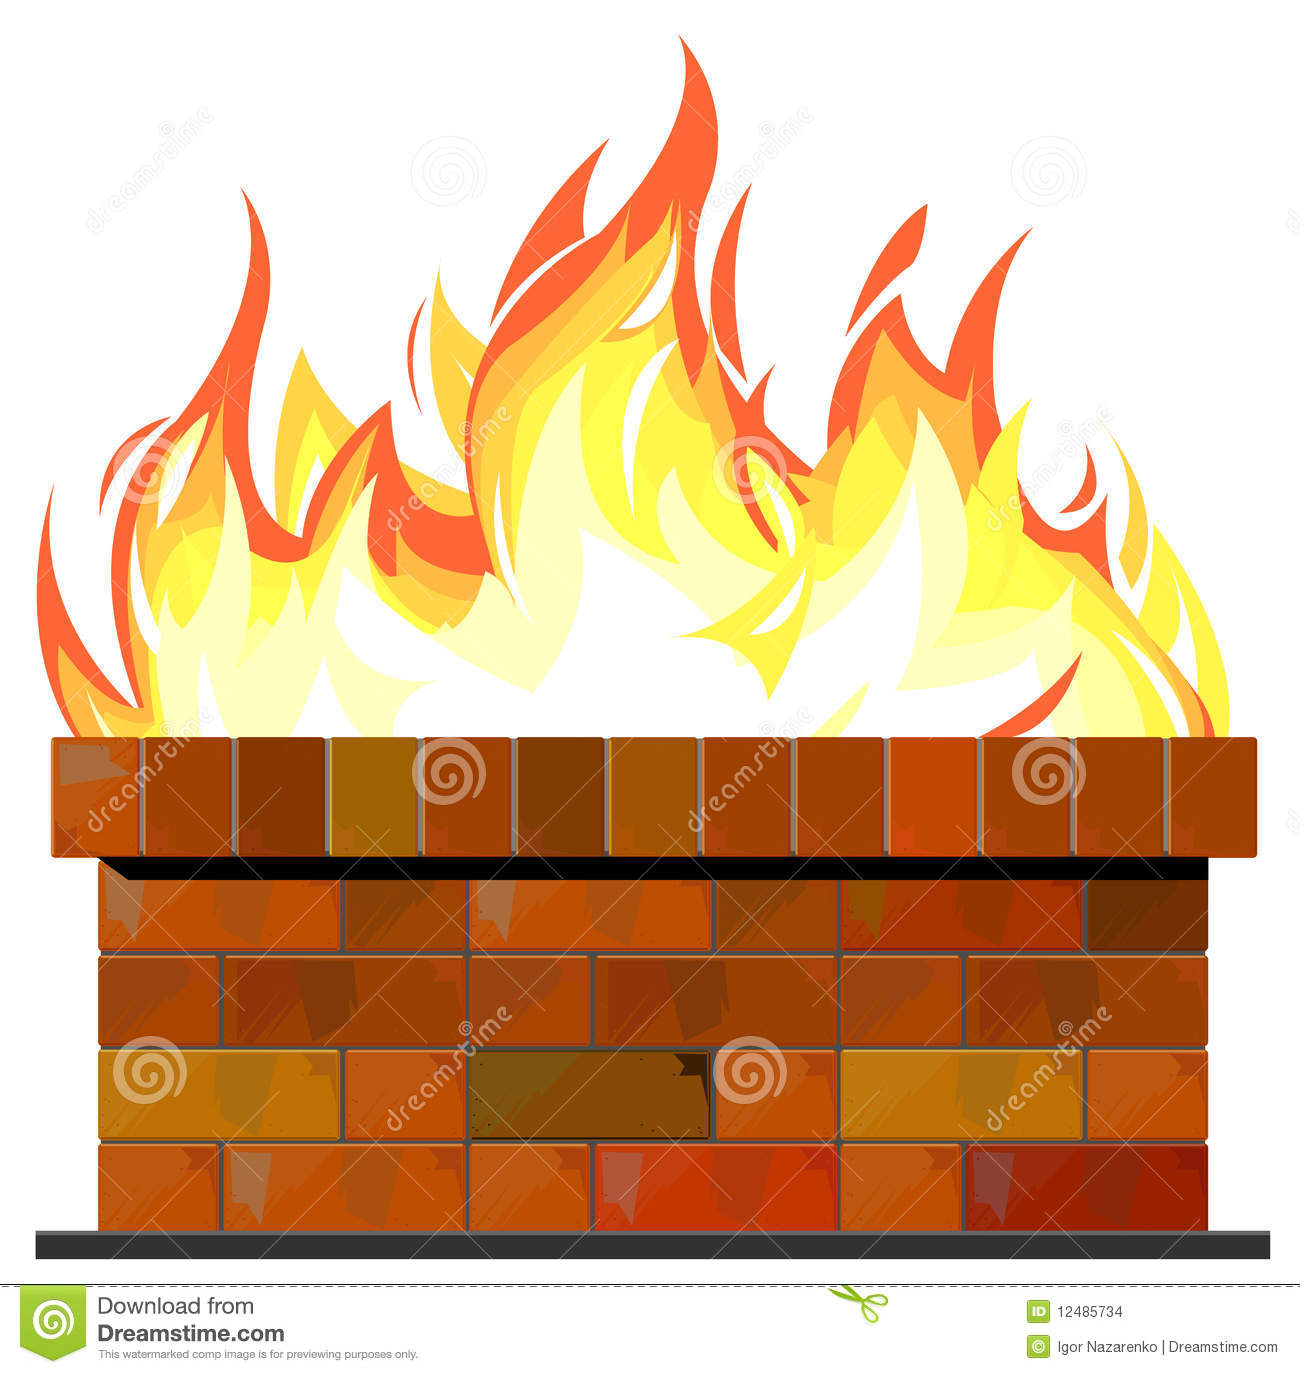 Brick wall on fire stock vector. Illustration of background - 12485734